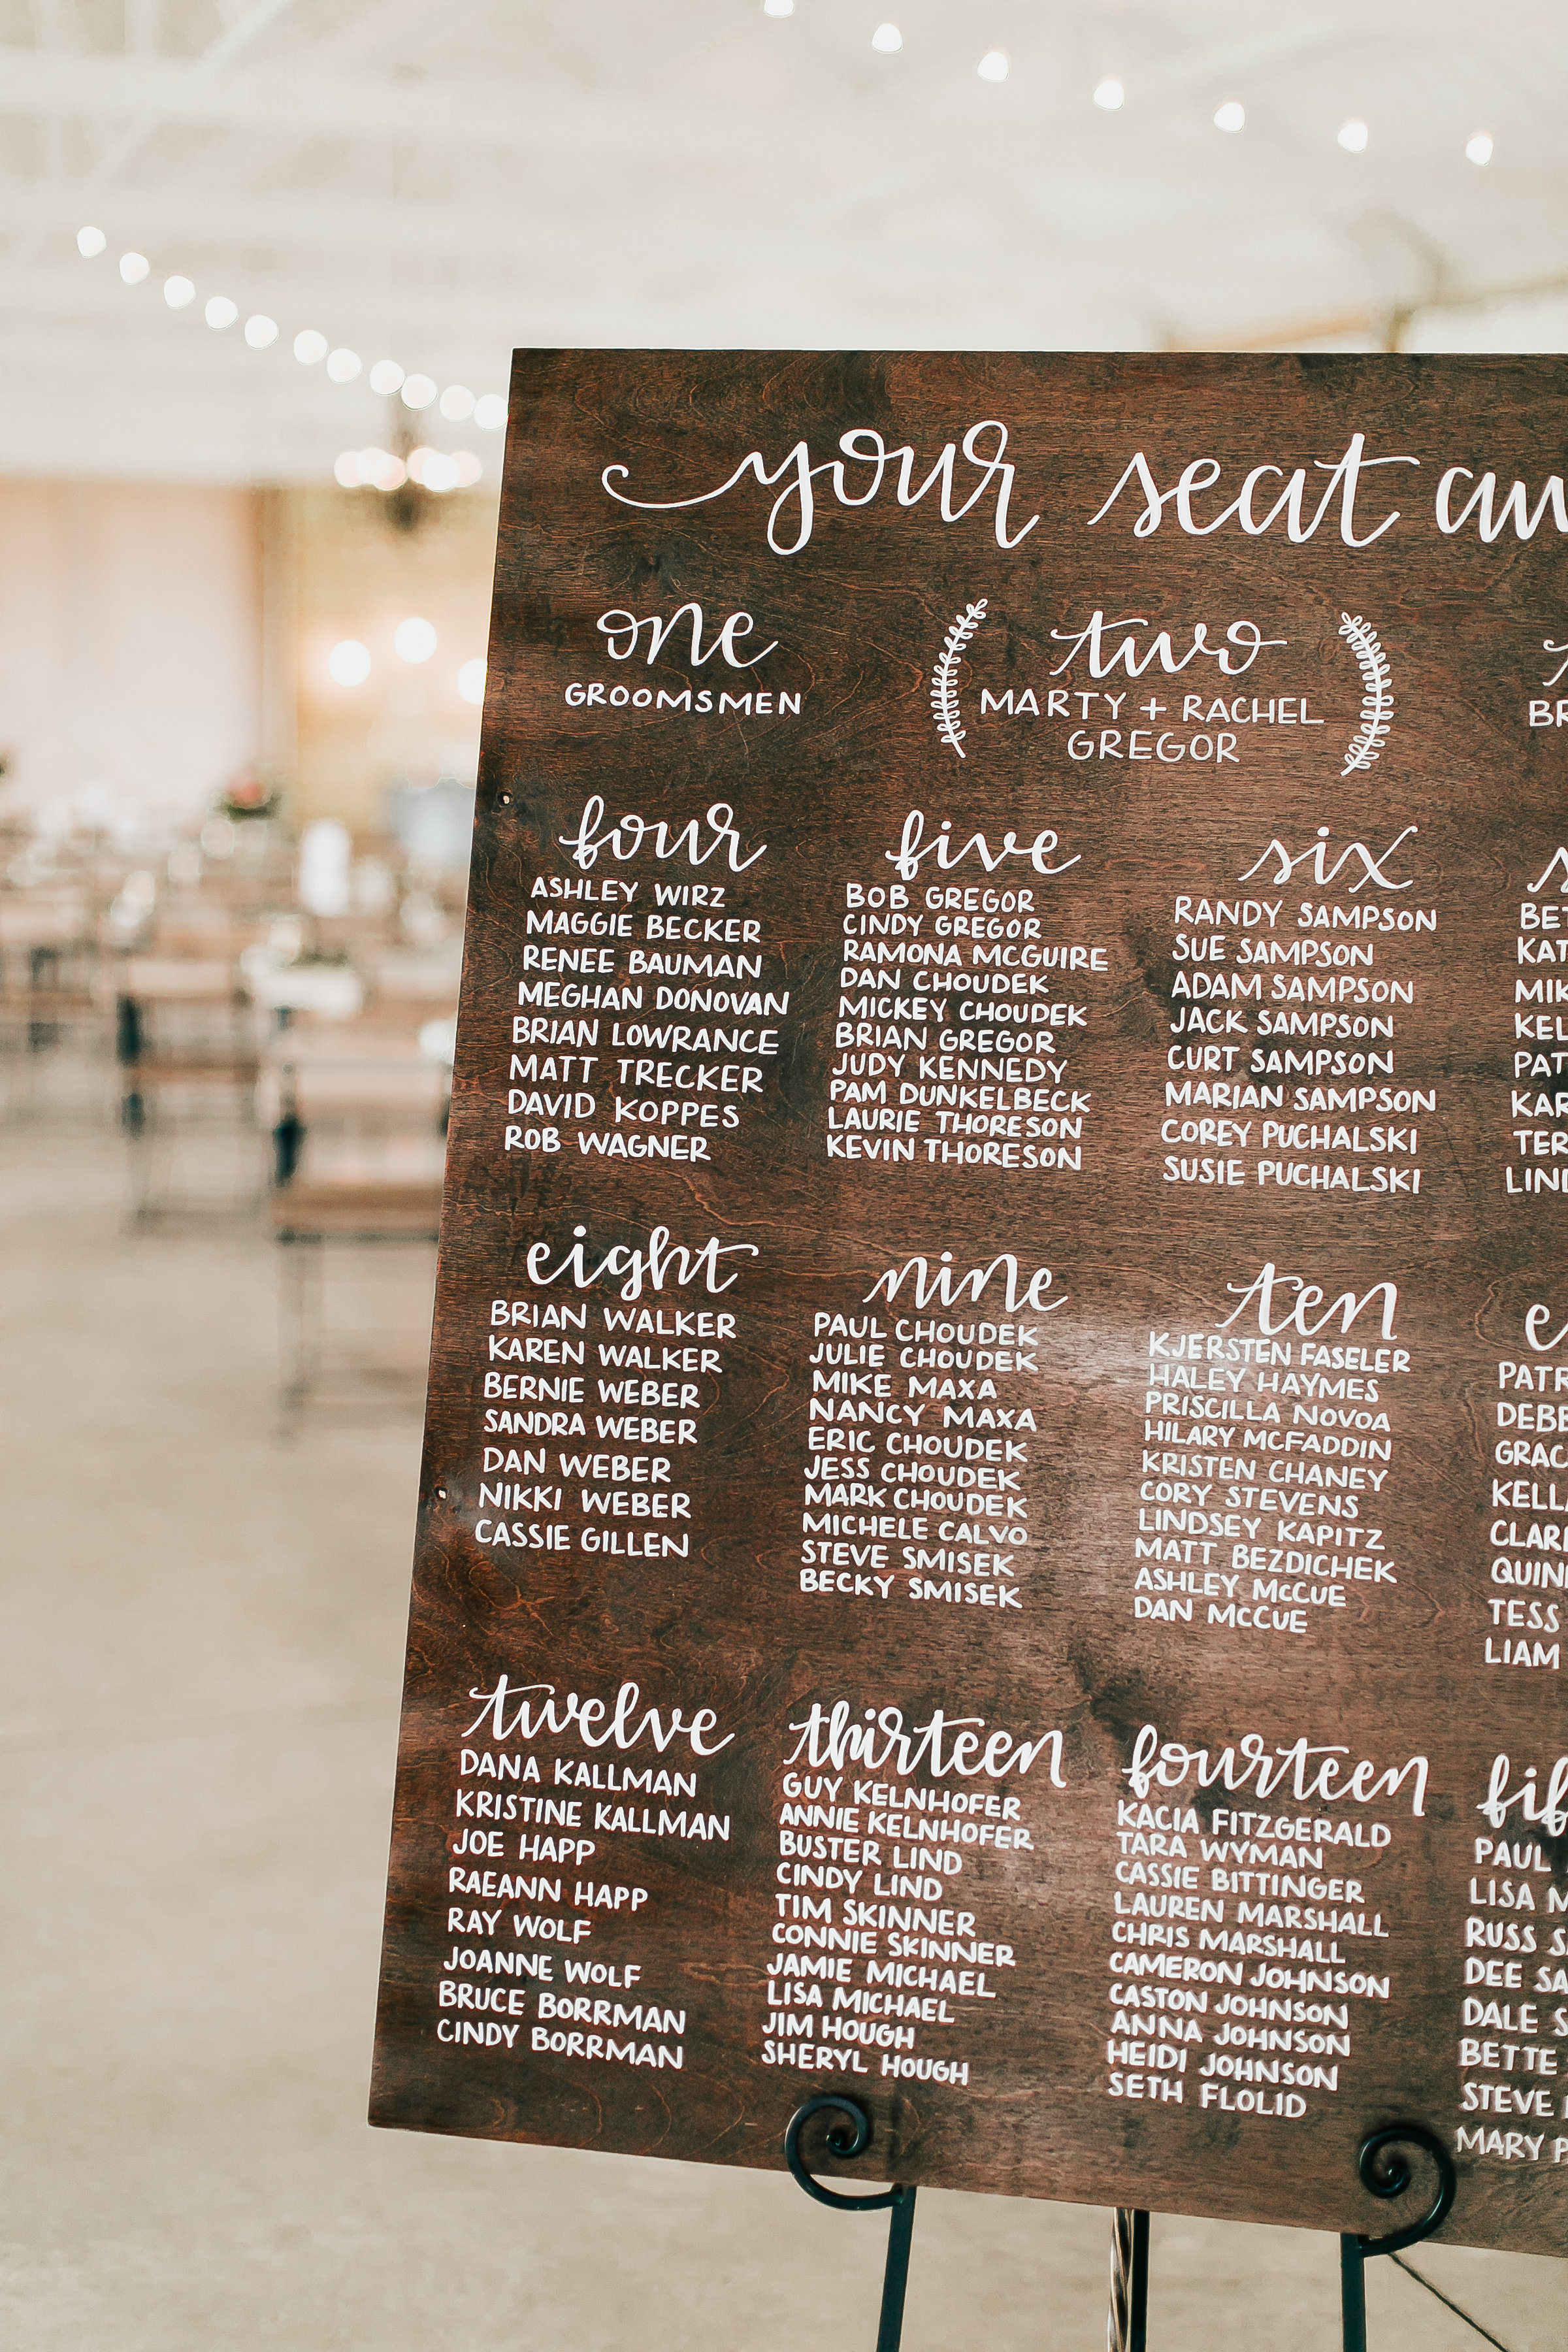 Legacy-Hil-Farm-Wedding-Reception-Seating-Chart-MN.jpg